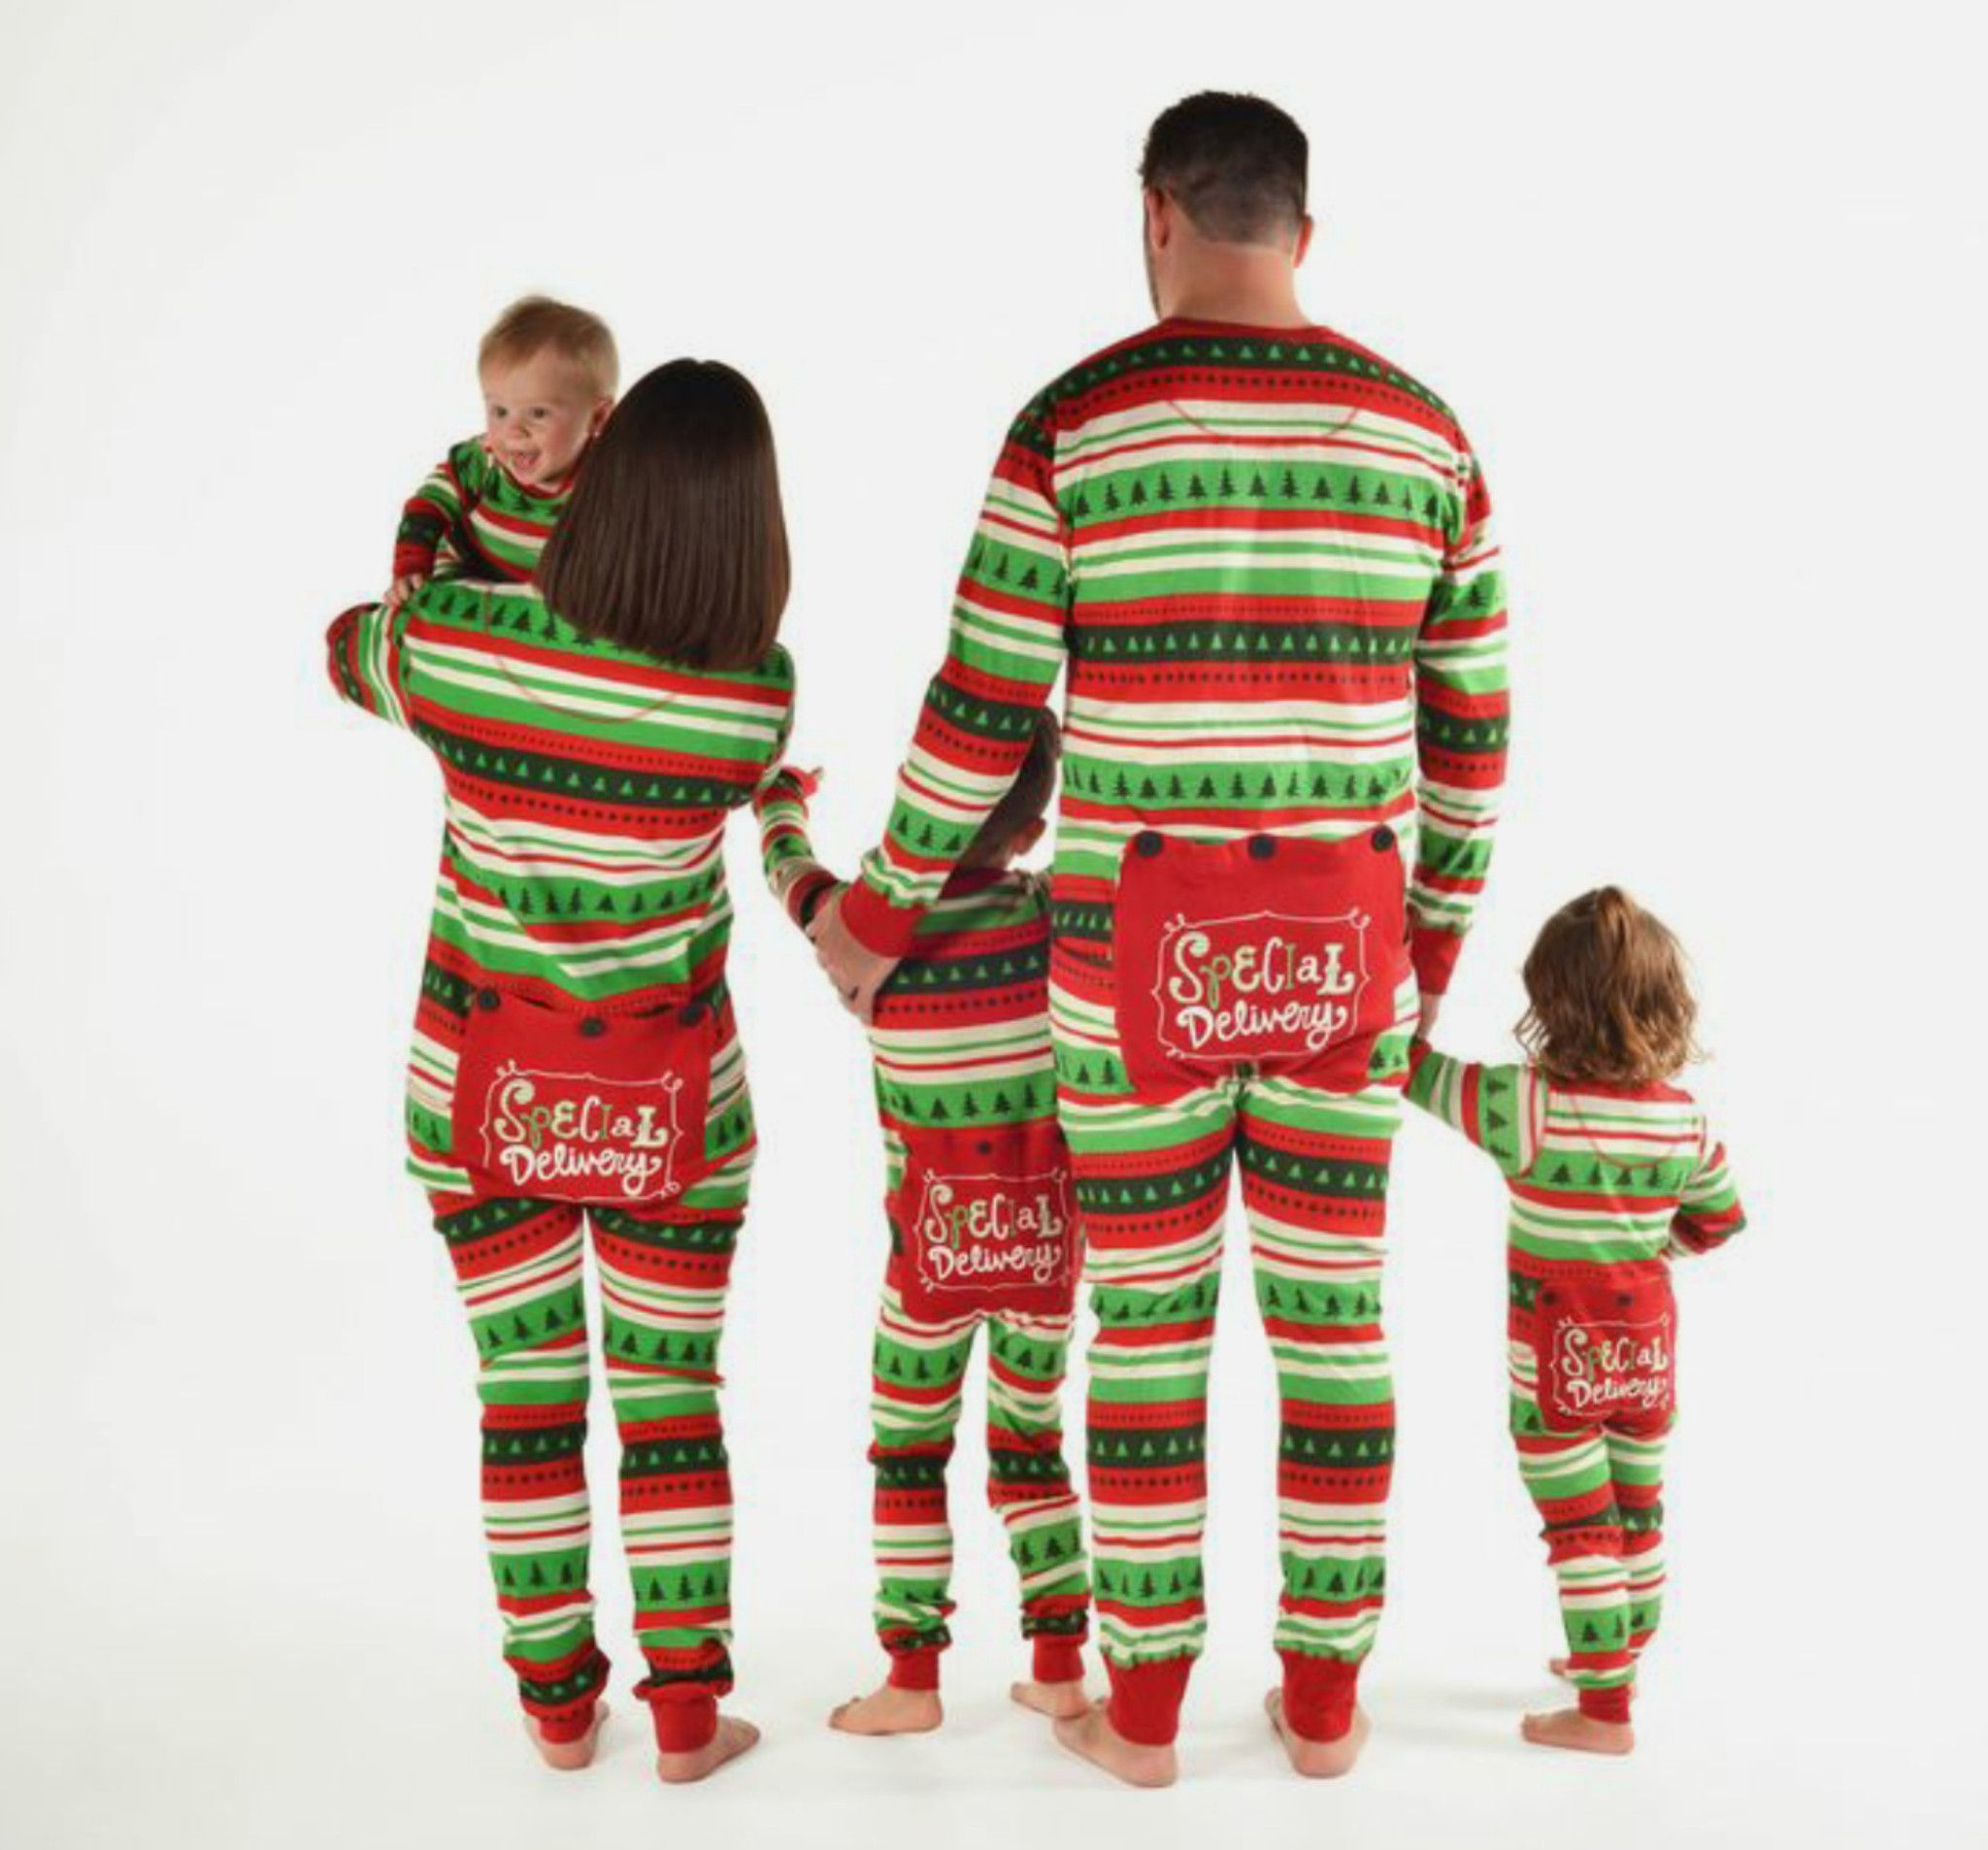 Lazyone Youth Special Delivery Flapjack Matching Christmas Pj s ... 12ae1a2f6